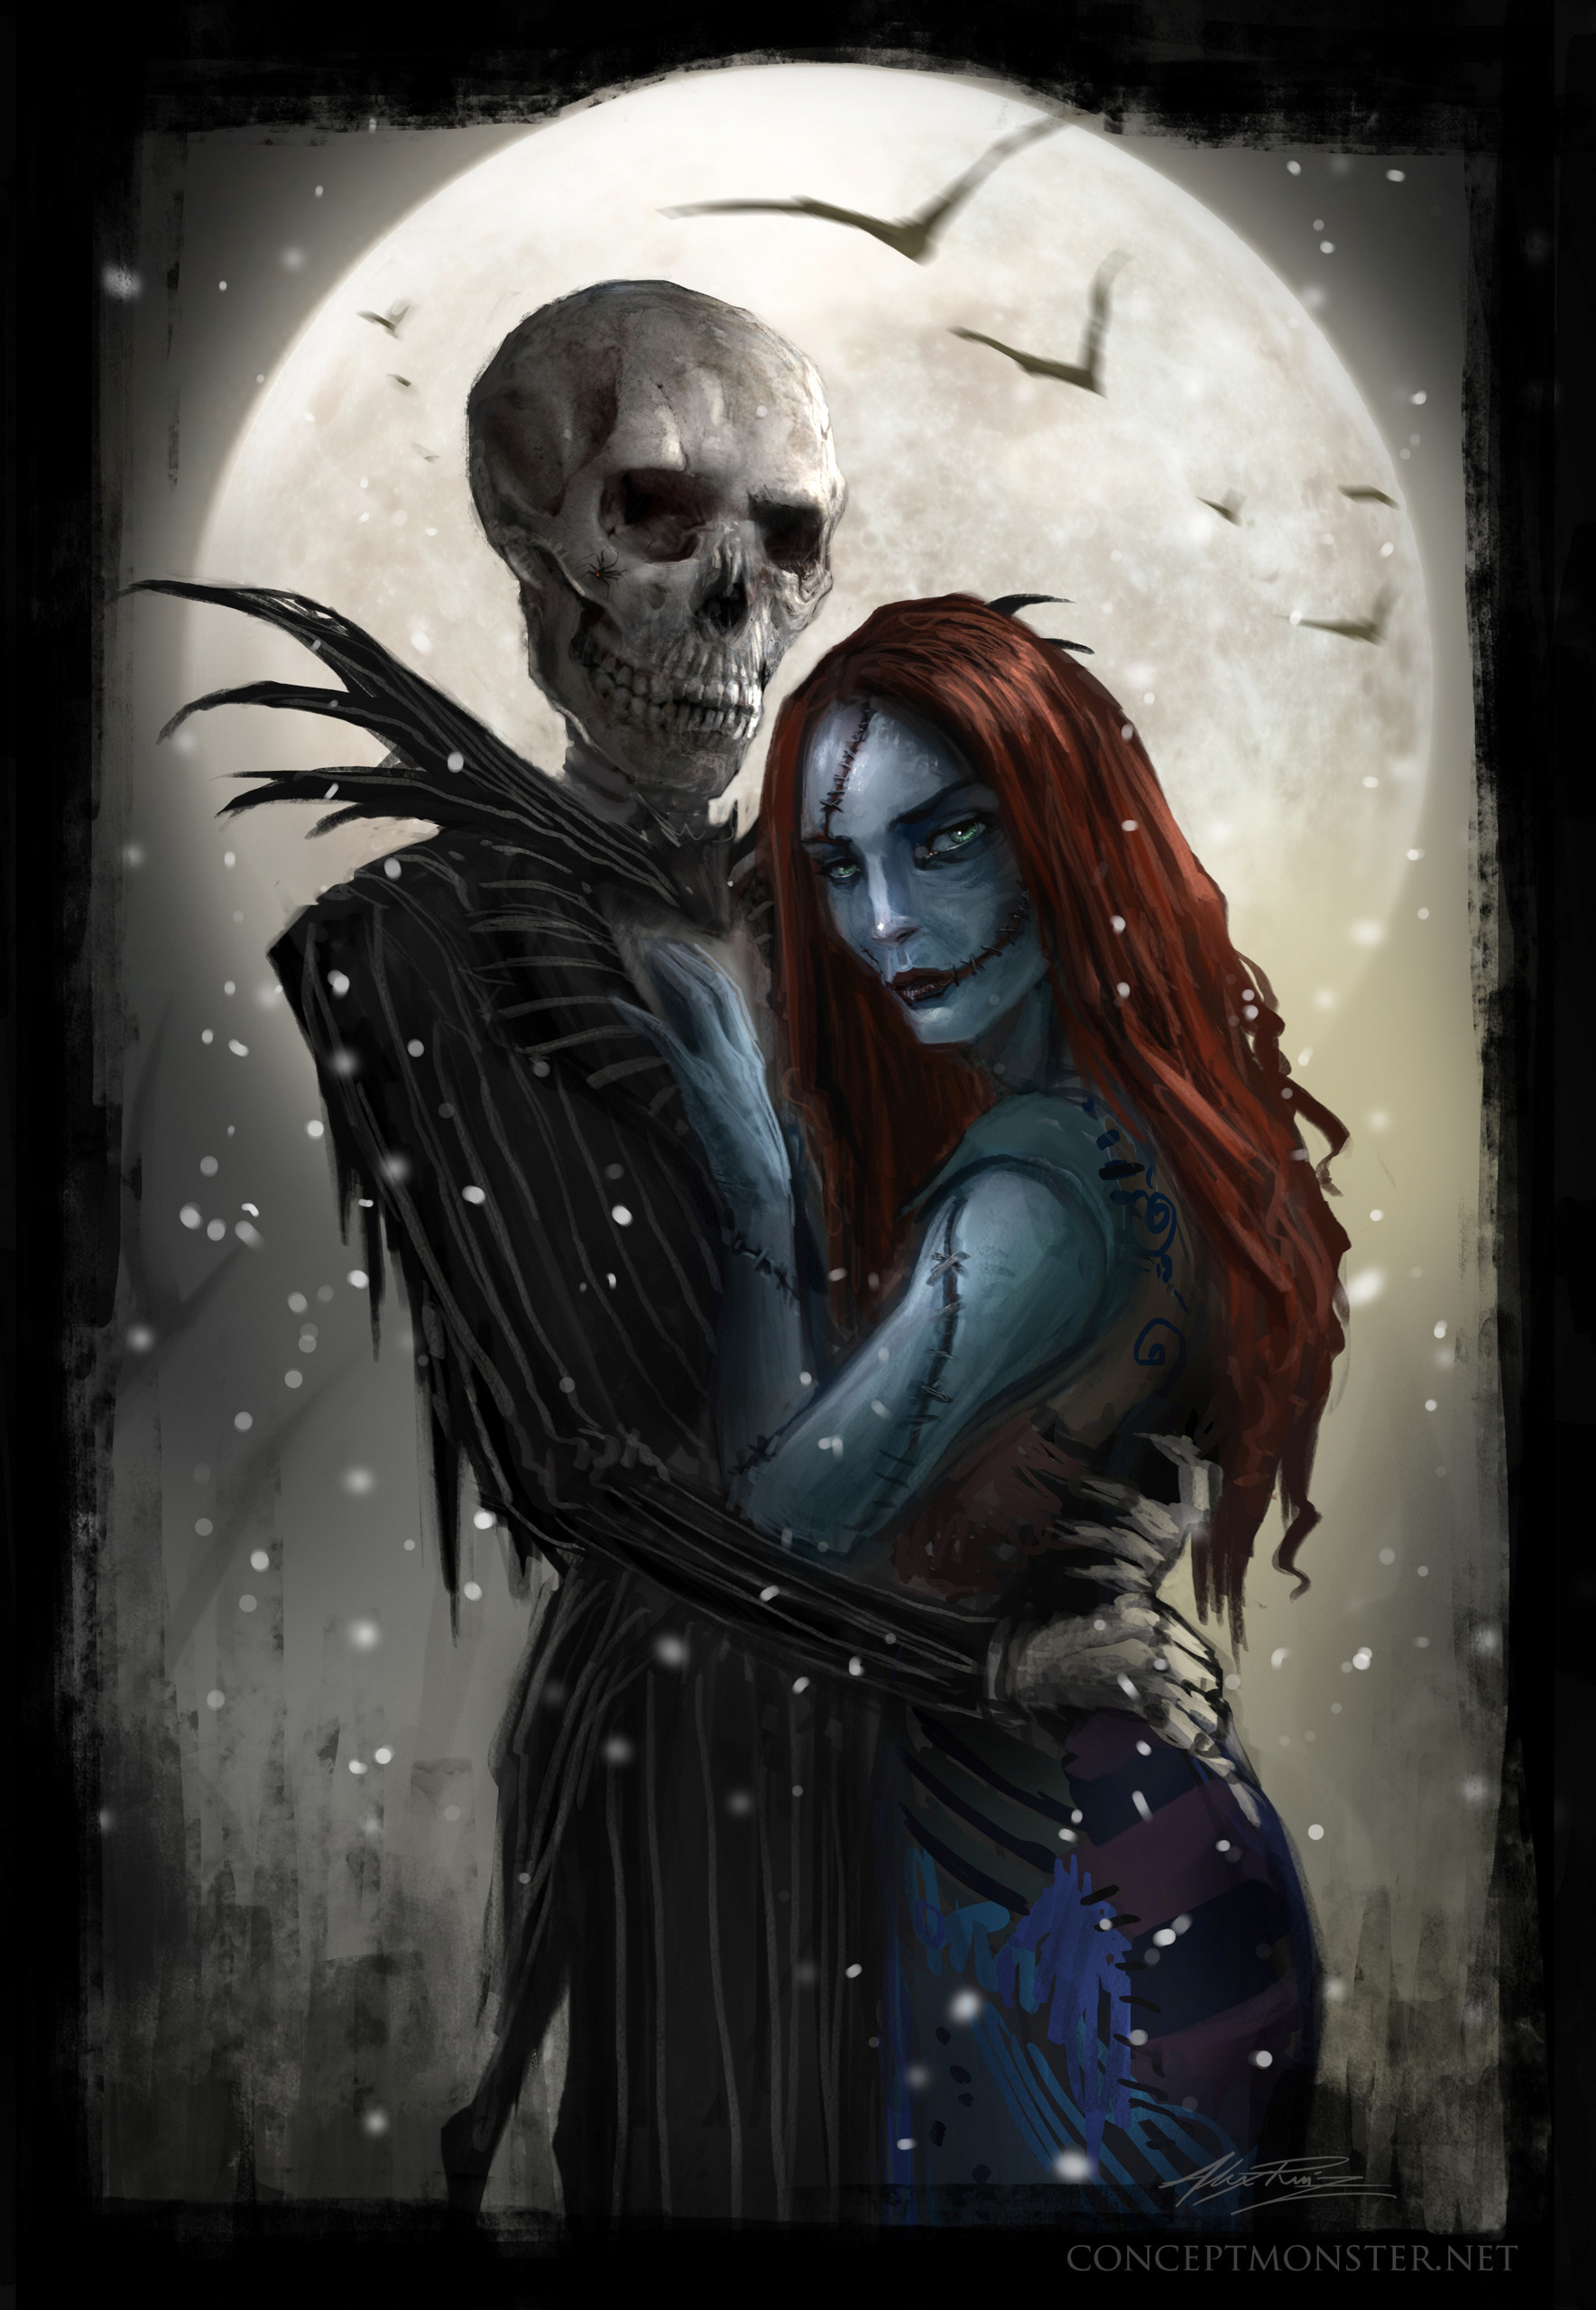 Jack-and-Sally-Meant-to-Be-nightmare-before-